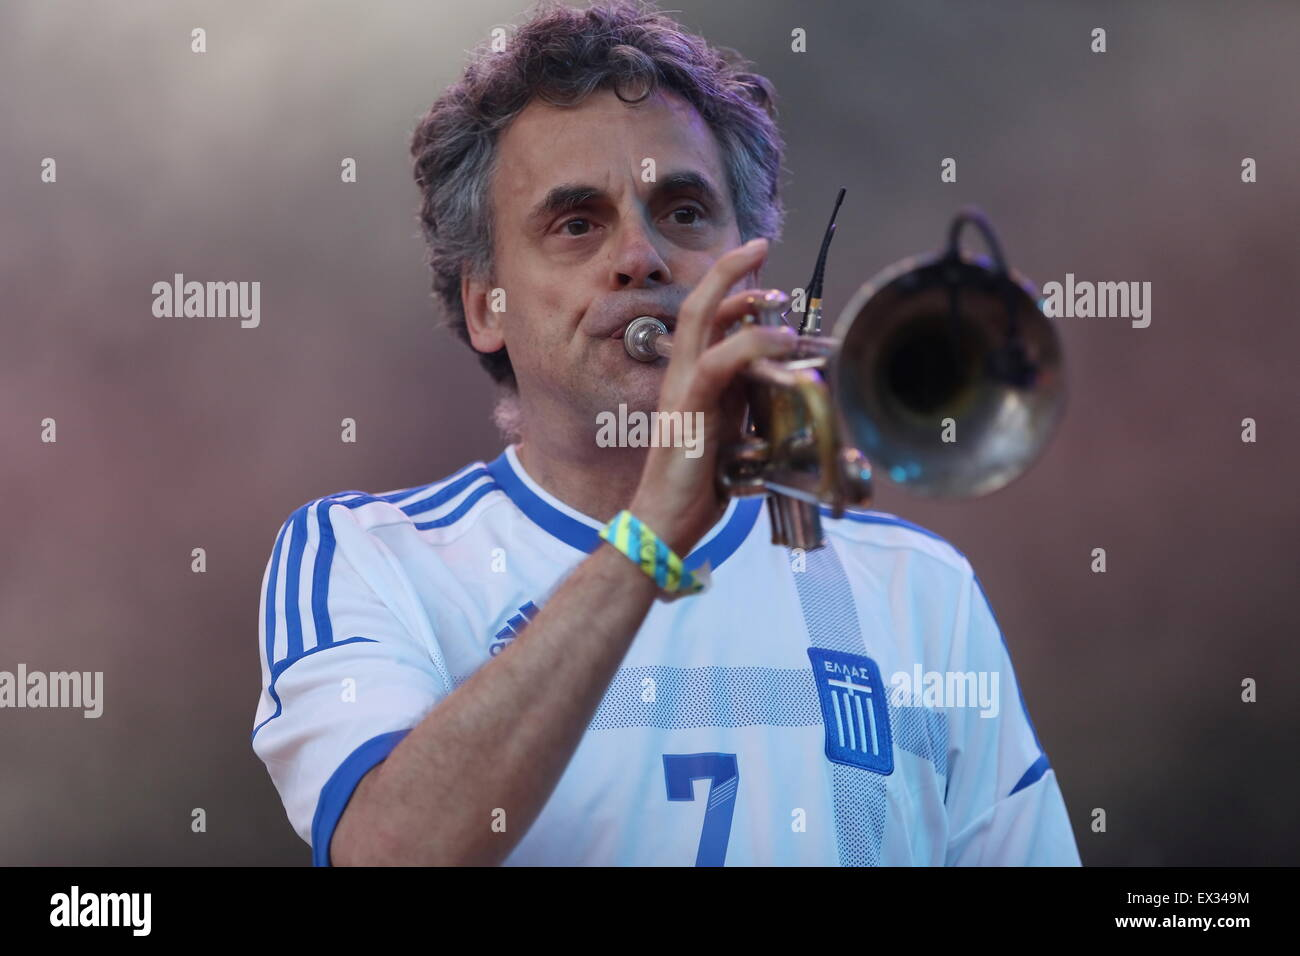 Delamere uk 5th july 2015 manchester band james performs live at manchester band james performs live at delamere forest to a sell out crowd with andy diagram on trumpet credit simon newburyalamy live news ccuart Image collections